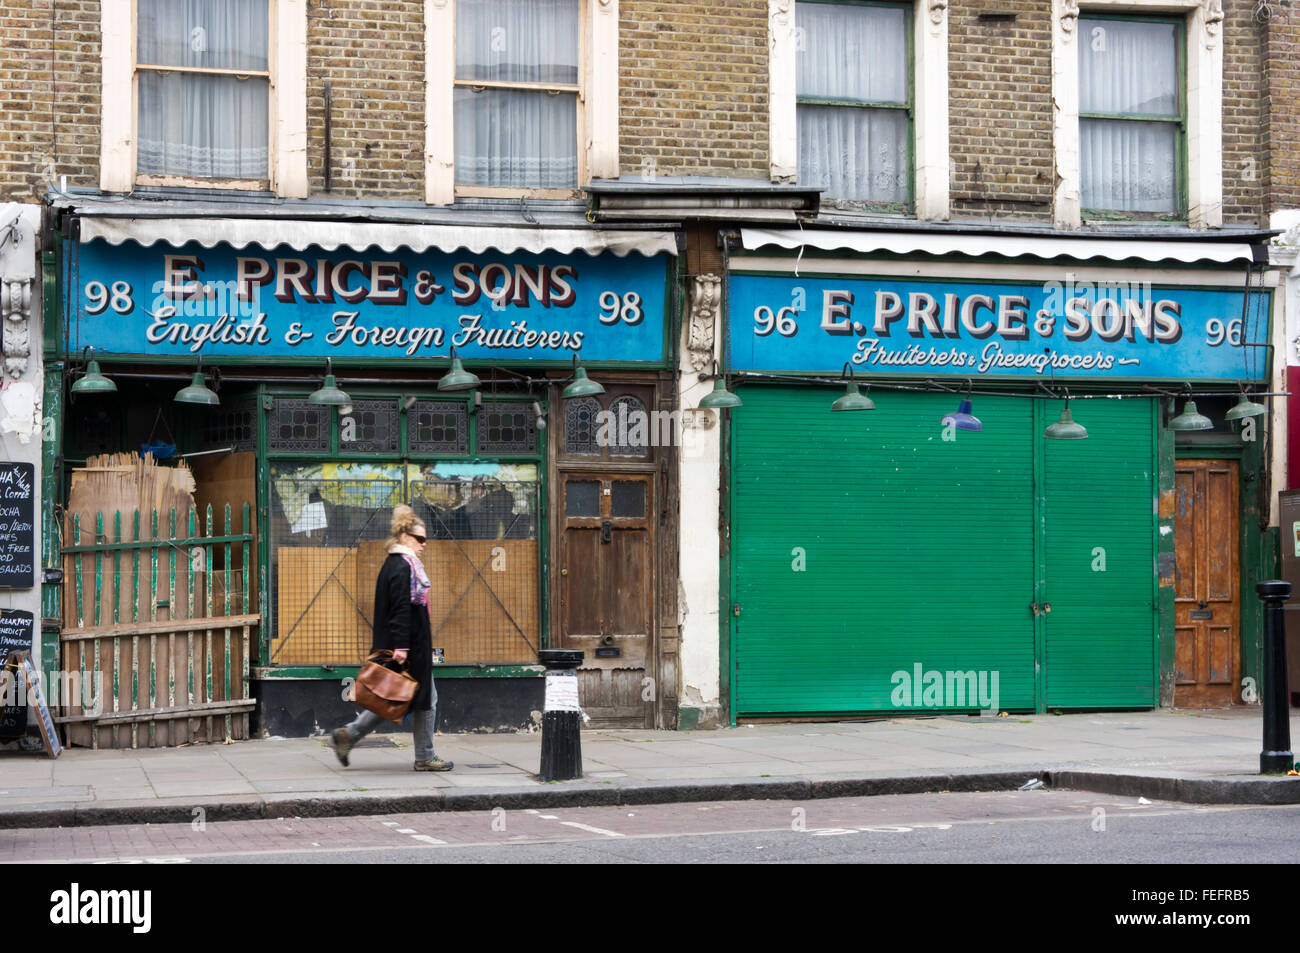 Woman (motion blurred) walking in front of closed greengrocers & fruiterers in Golborne Road. - Stock Image